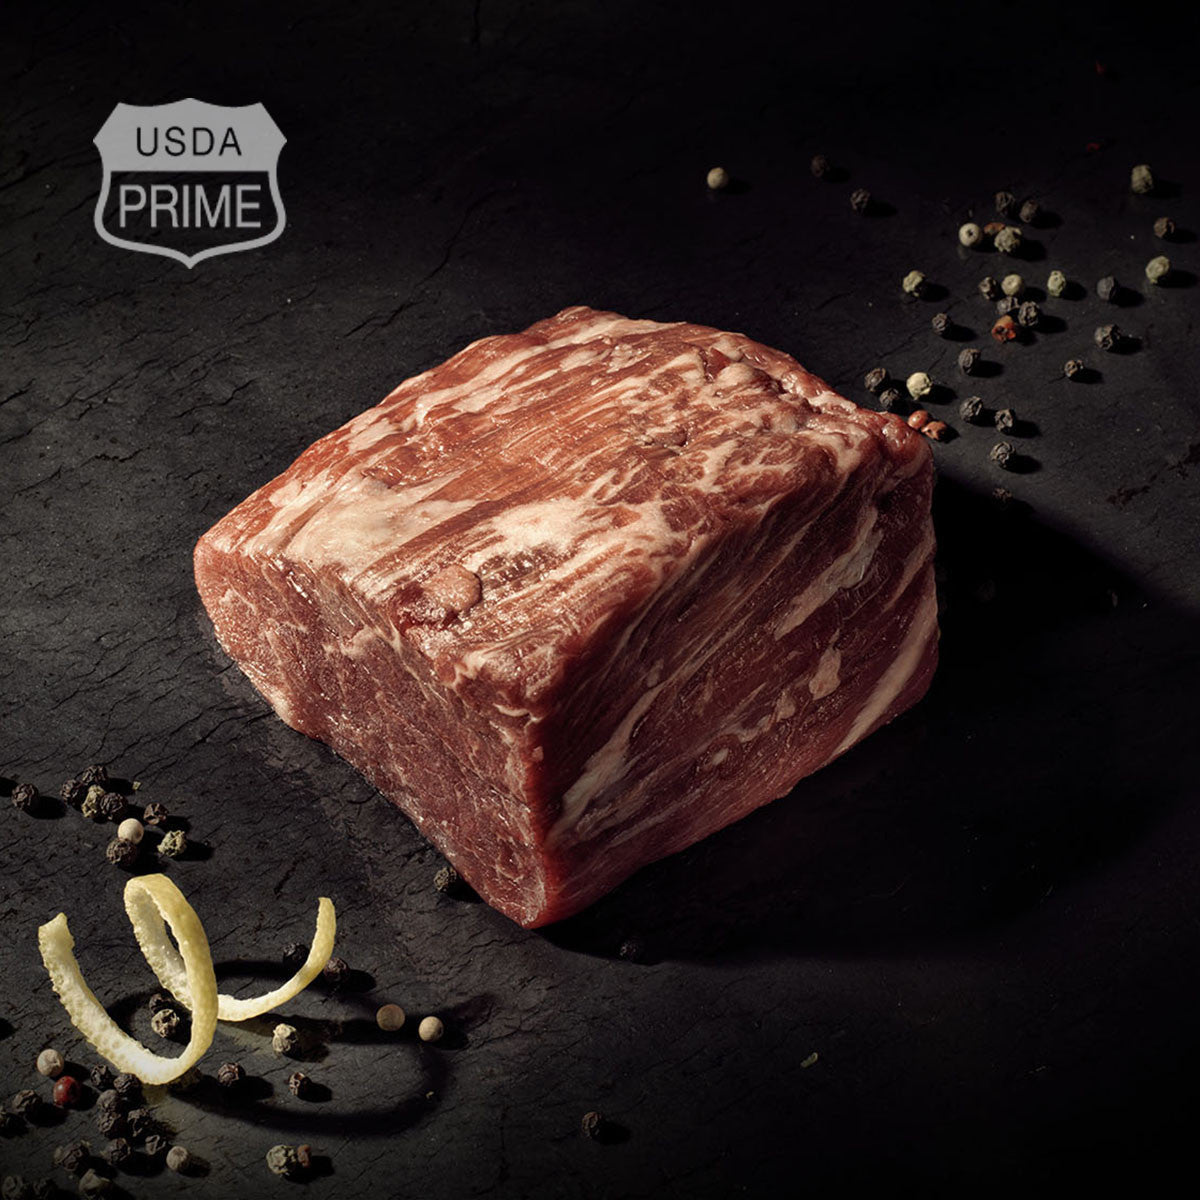 Buy organic beef - Attractive Buy Chateaubriand 7 Buy Organic Beef Chateaubriand From Coombe Farm Organic A Delicious Thick Cut From The Centre Of The Tenderloin Fillet